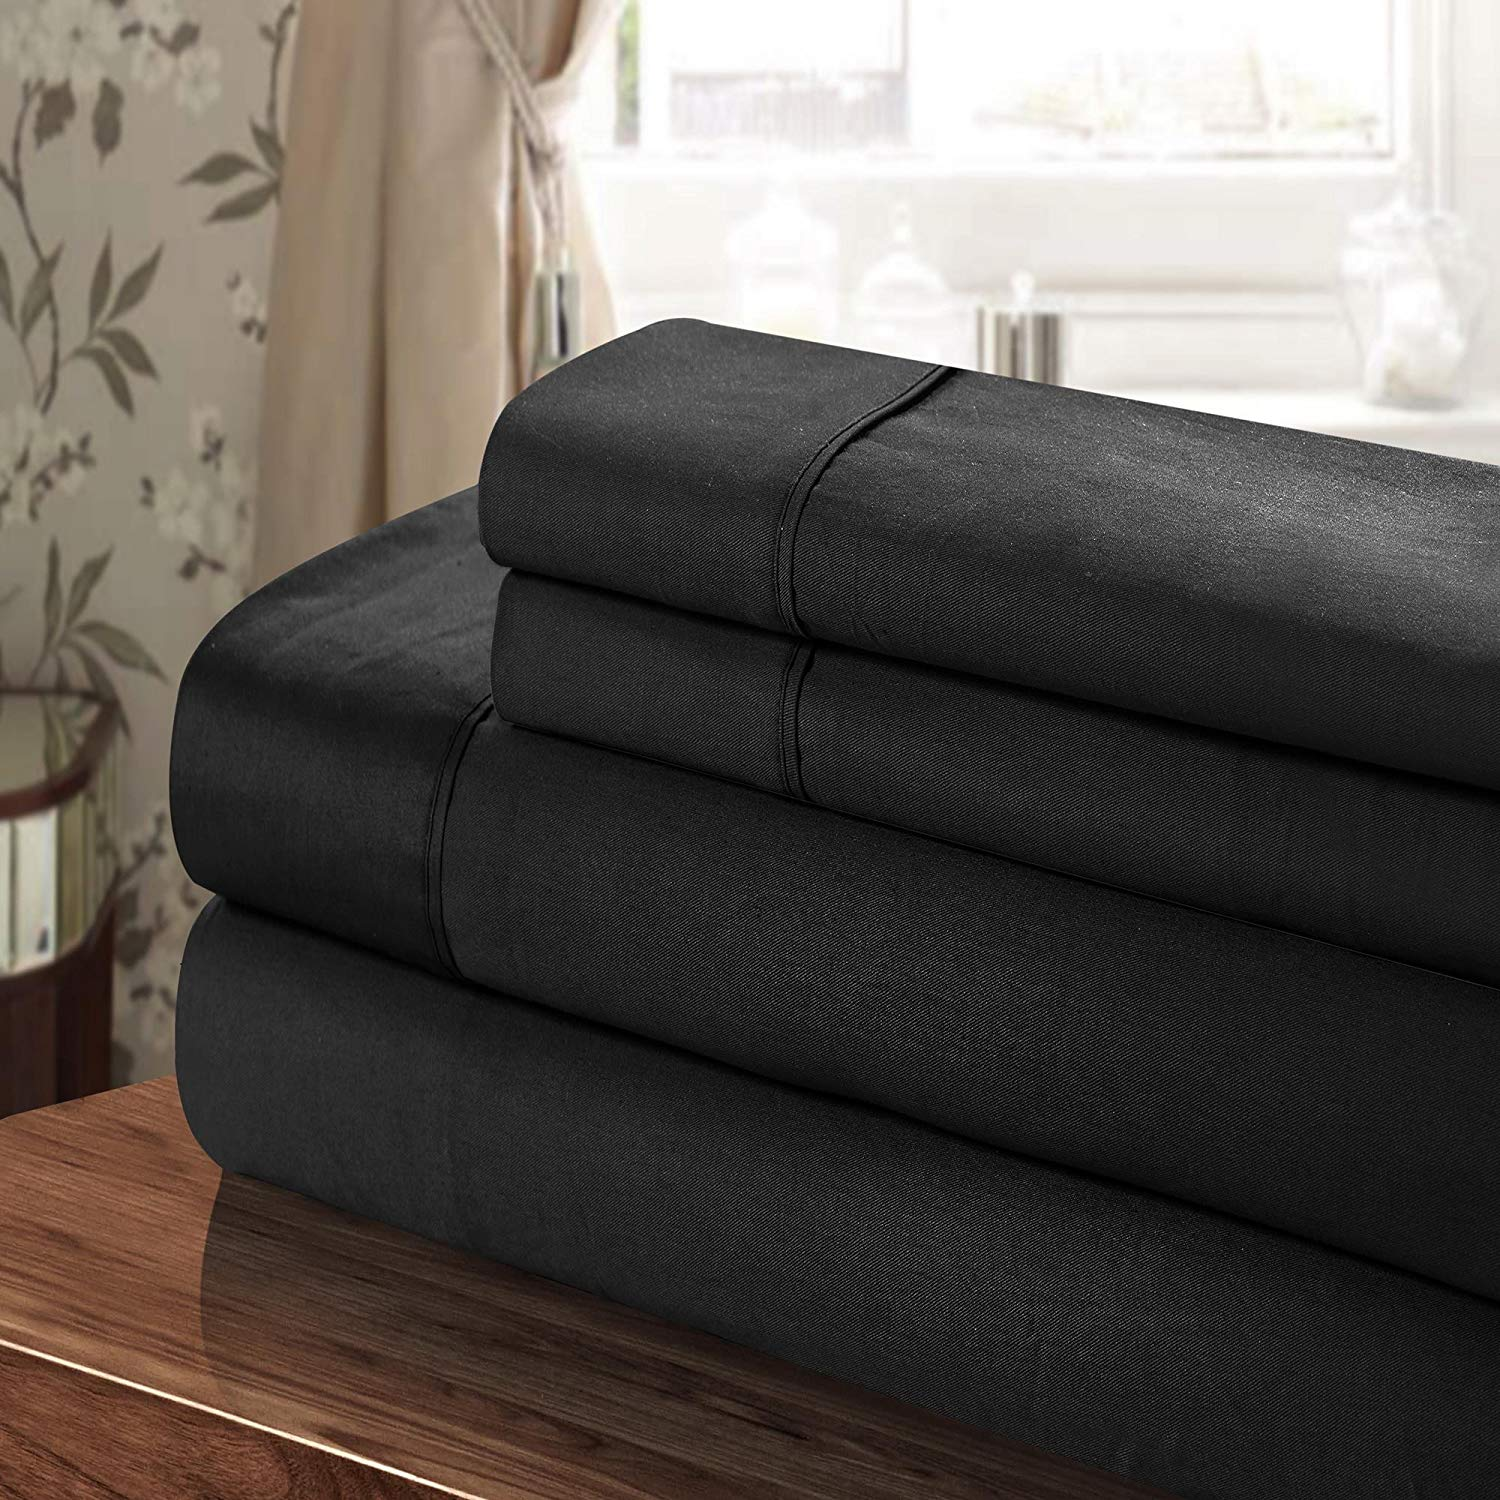 Sheet Set, King, Black, 100% Egyptian Cotton 300 Tc By Chic Home